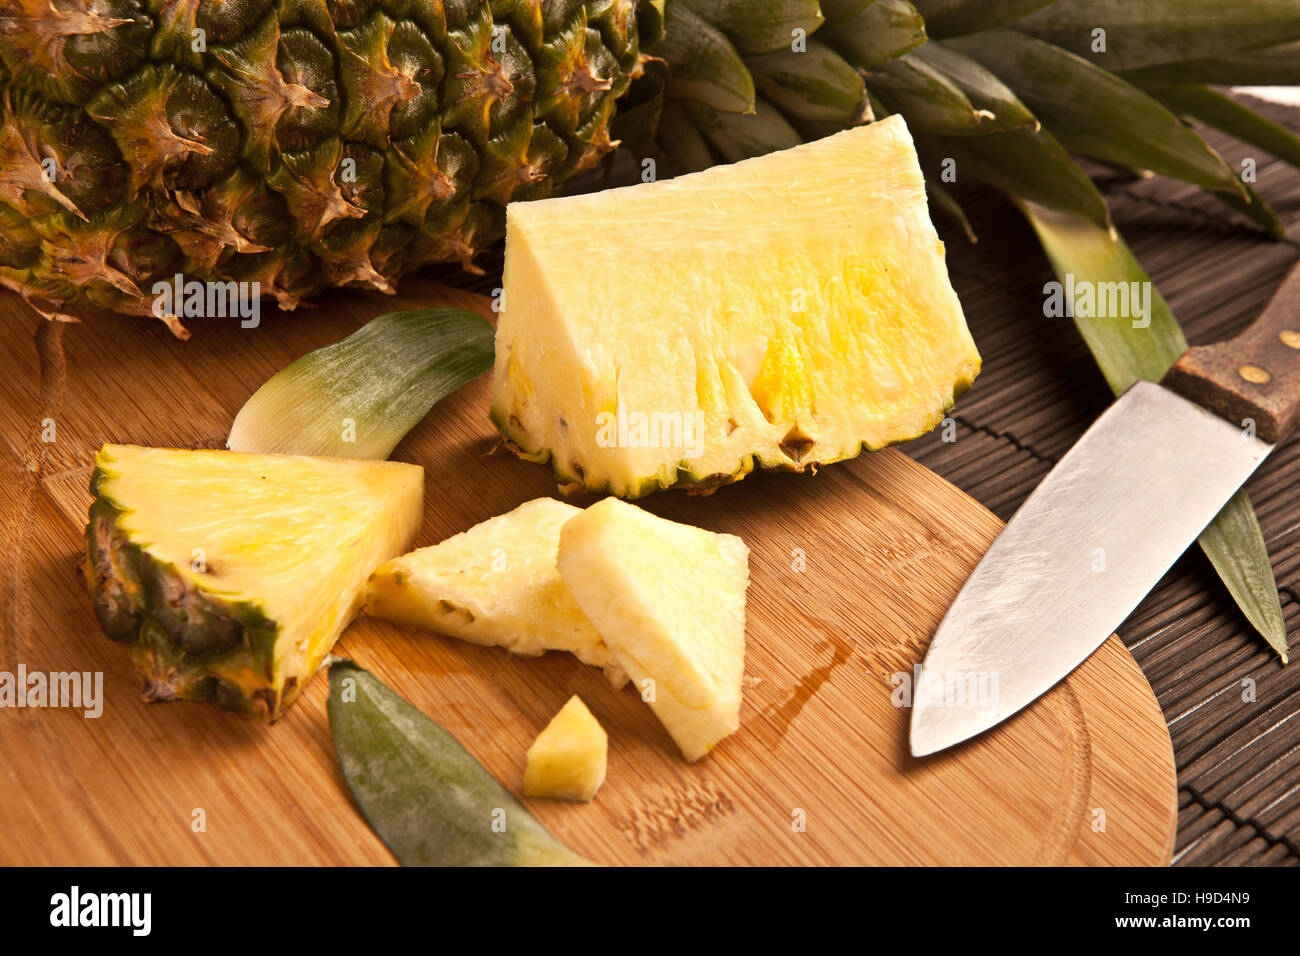 Fresh slice pineapple on a wooden plank - Stock Image